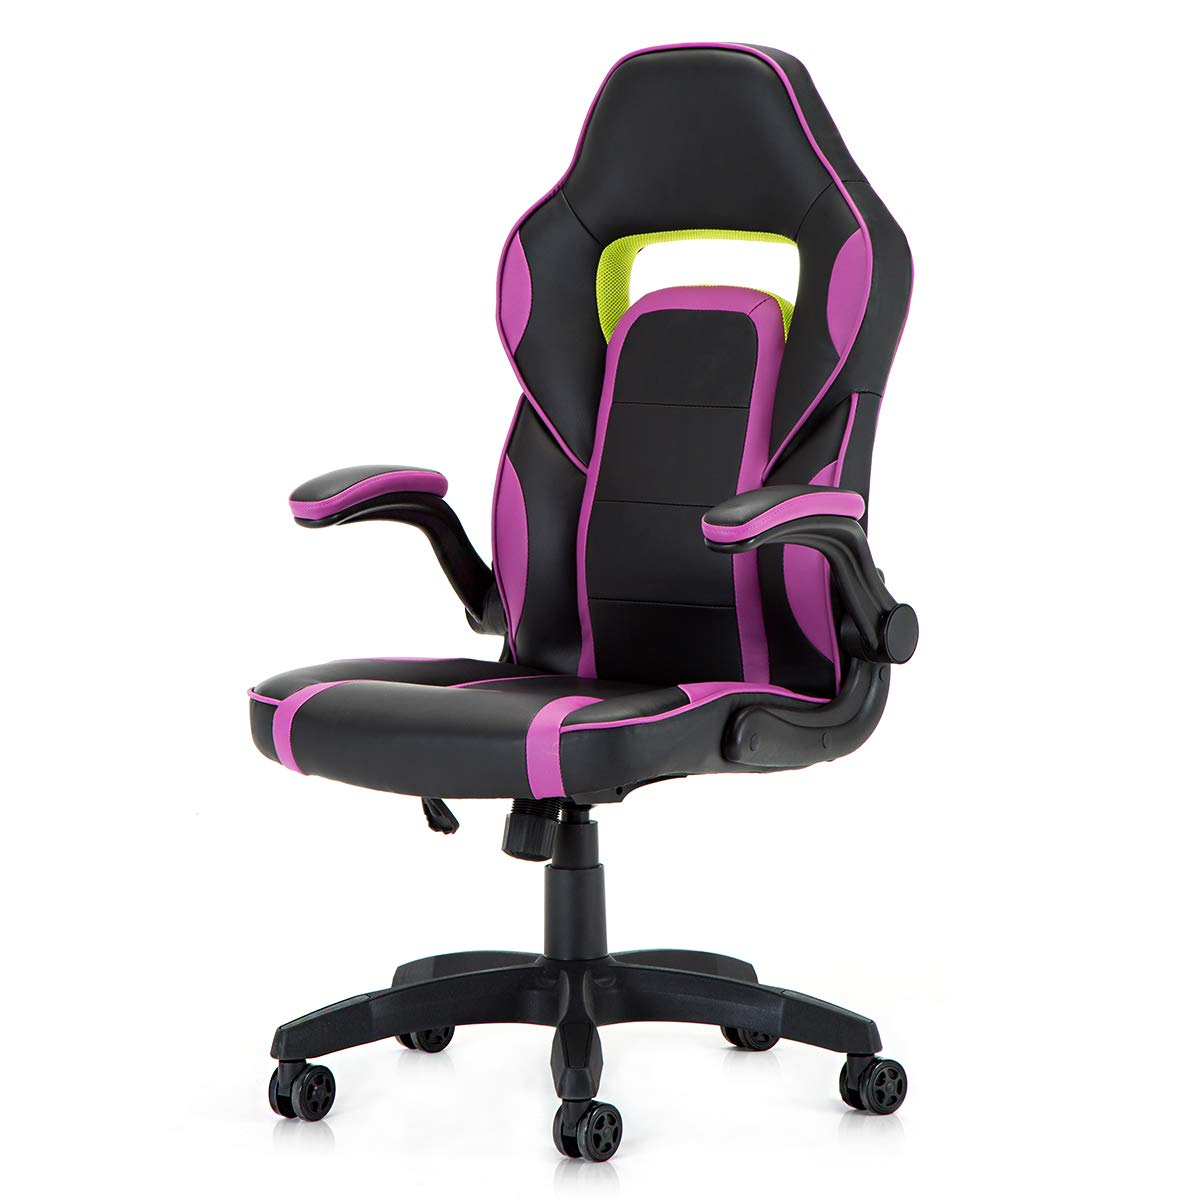 Racing Style PU Leather Gaming Chair - Ergonomic Swivel Computer, Office or Gaming Chair Desk Chair HOT (PUR)